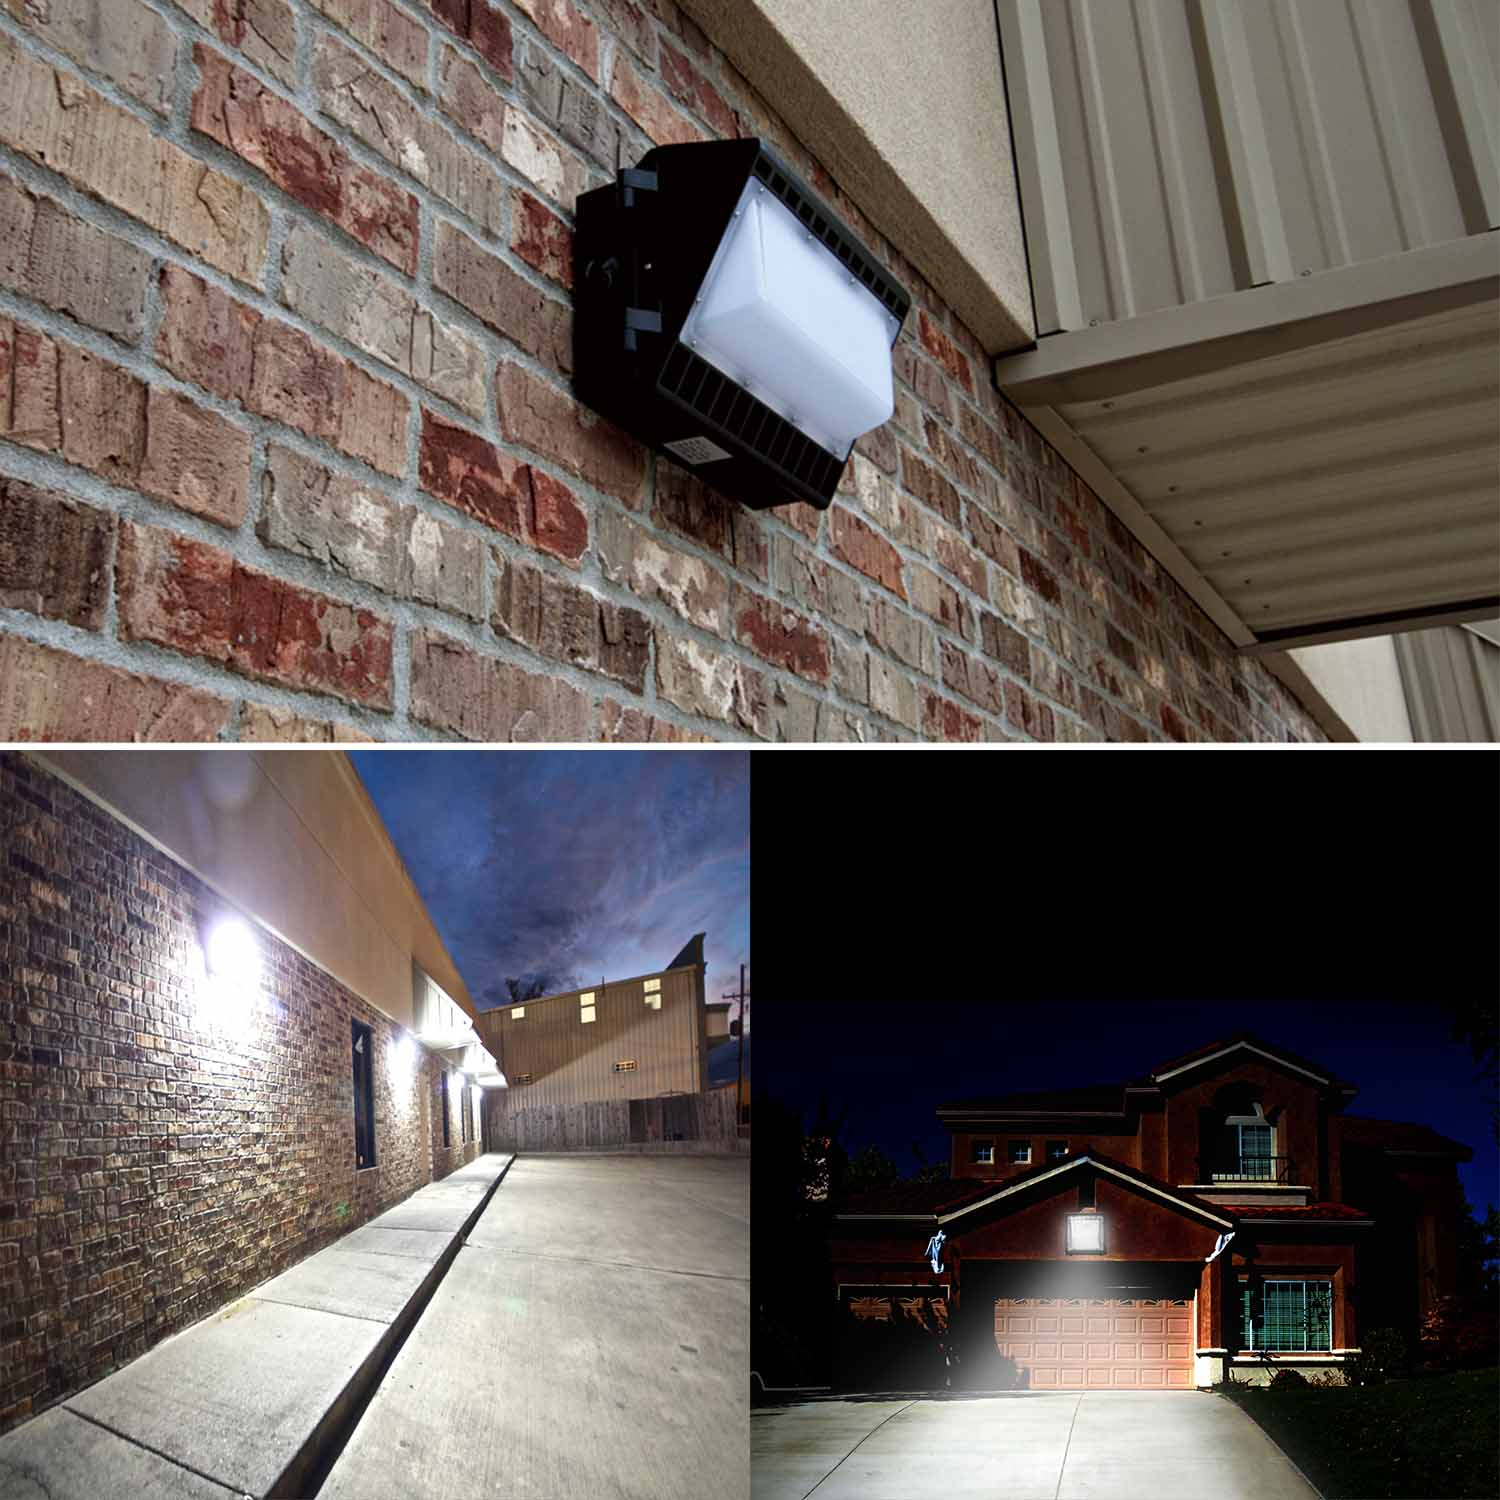 Kawell 24w led wall pack lighting fixtures outdoor wall light kawell 24w led wall pack lighting fixtures outdoor wall light waterproof ip65 etl dlc aloadofball Images